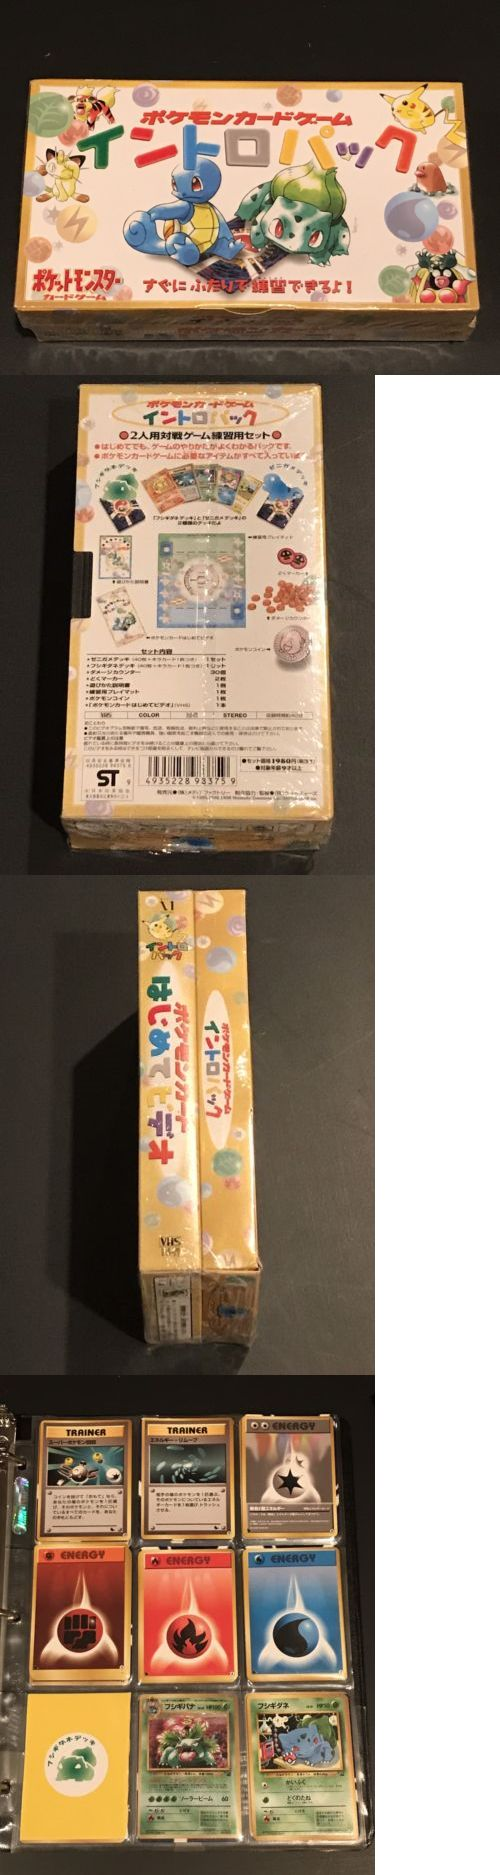 Pok mon Complete Sets 104046: Sealed Japanese Complete Pokemon Squirtle Bulbasaur Card Intro Pack Deck Vhs Tcg -> BUY IT NOW ONLY: $100 on eBay!